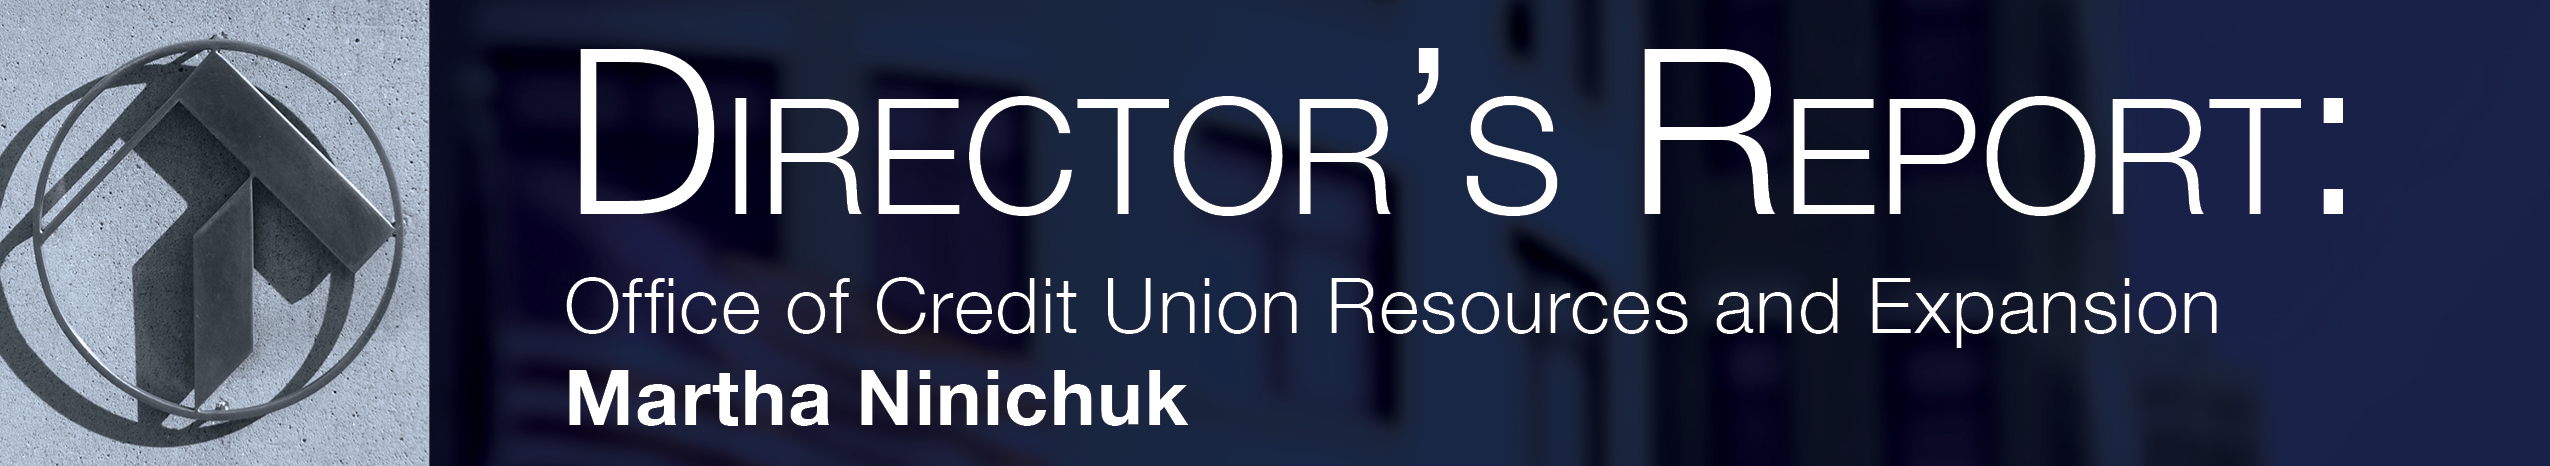 Director's Report: Office of Credit Union Resources and Expansion - Martha Ninichuk